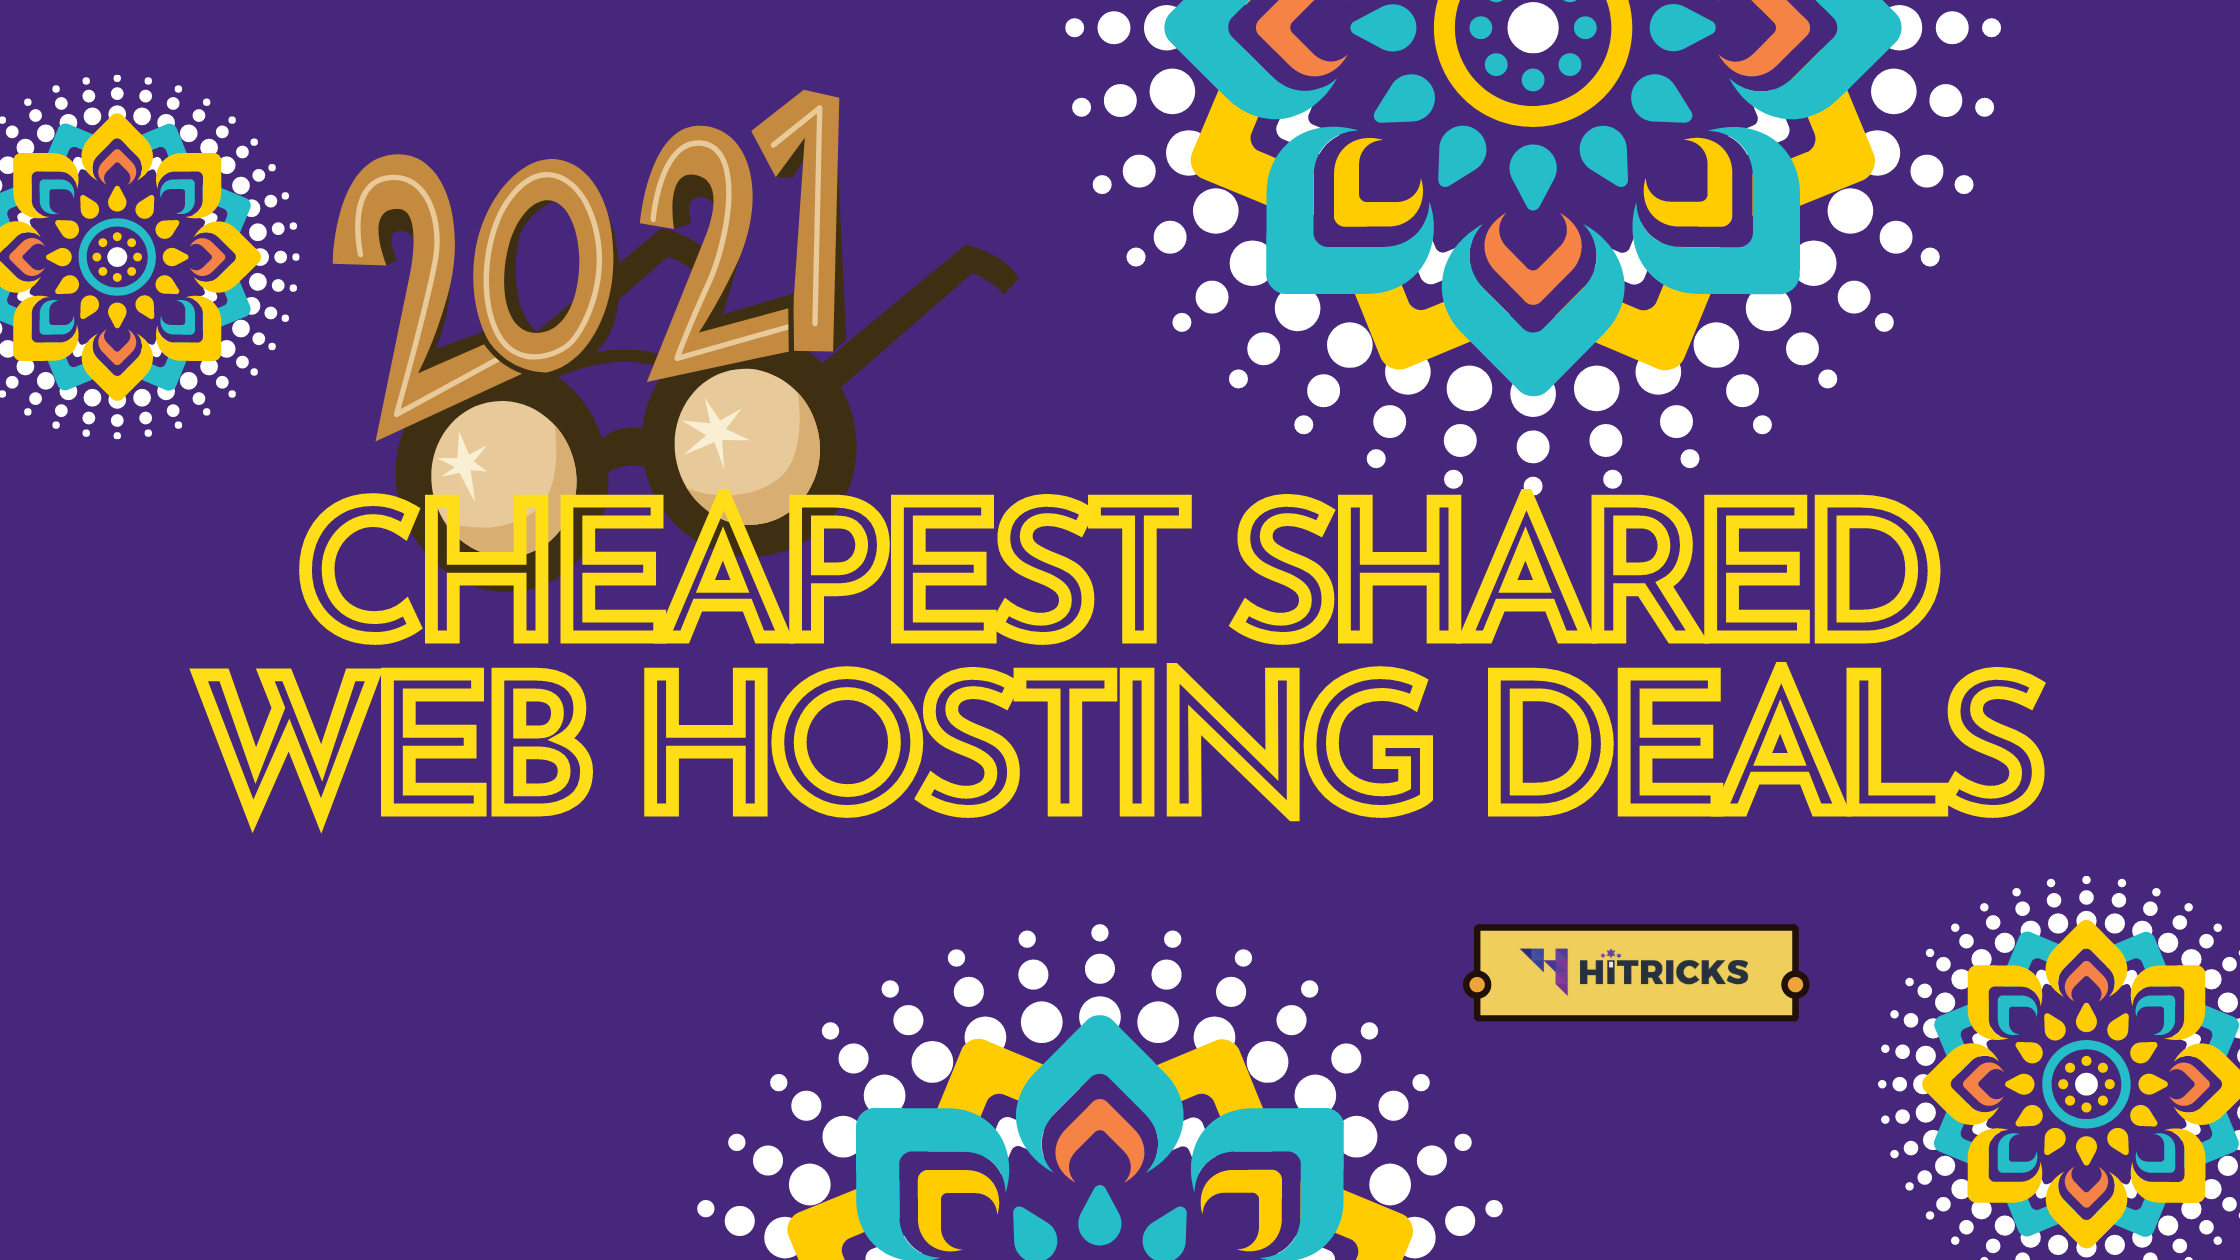 Cheapest Shared Web Hosting Deals January 2021